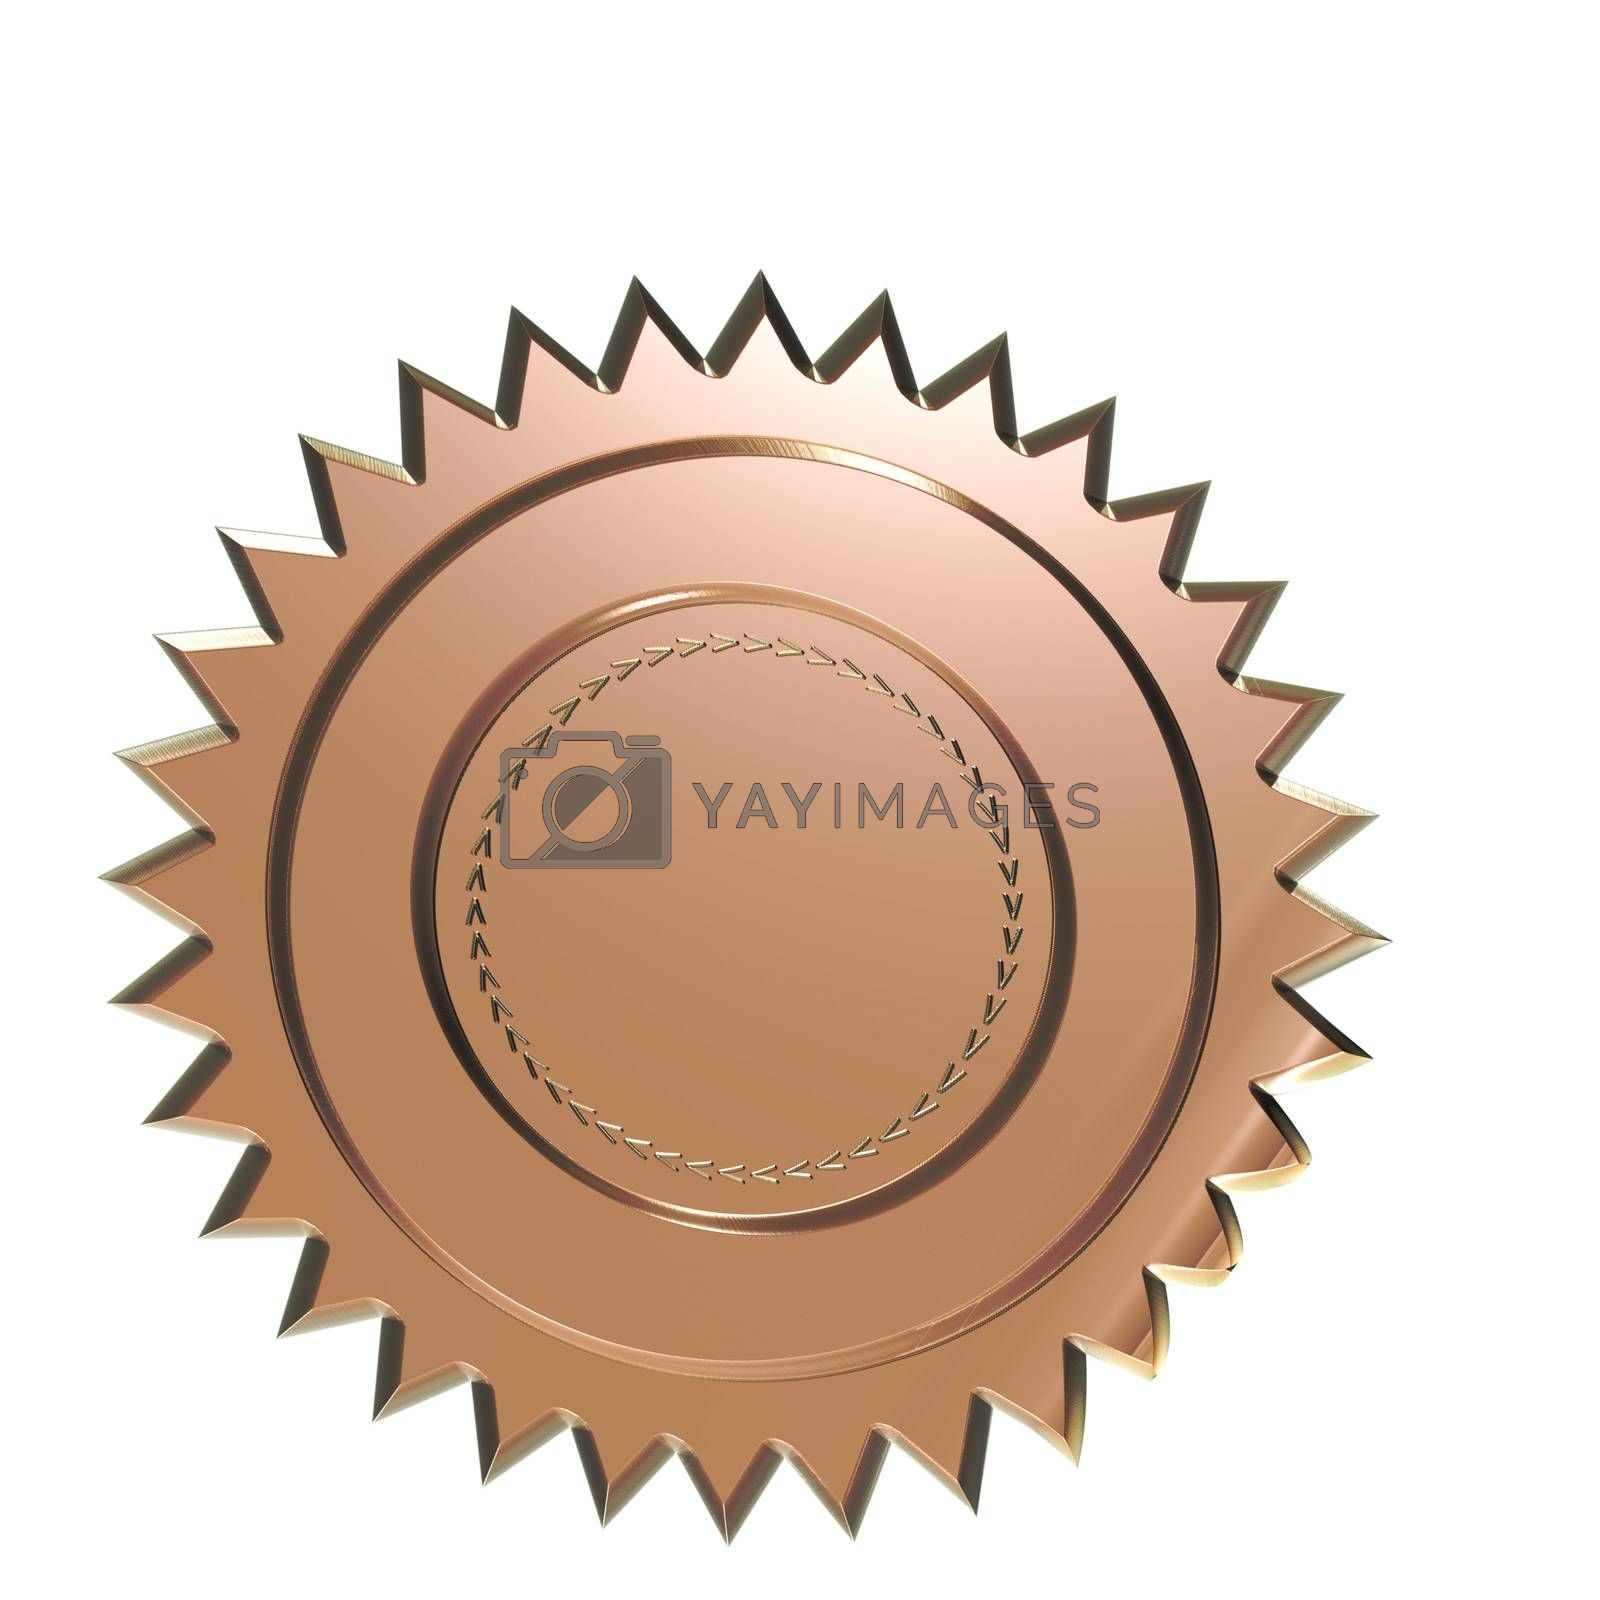 Royalty free image of Blank badge. by richter1910